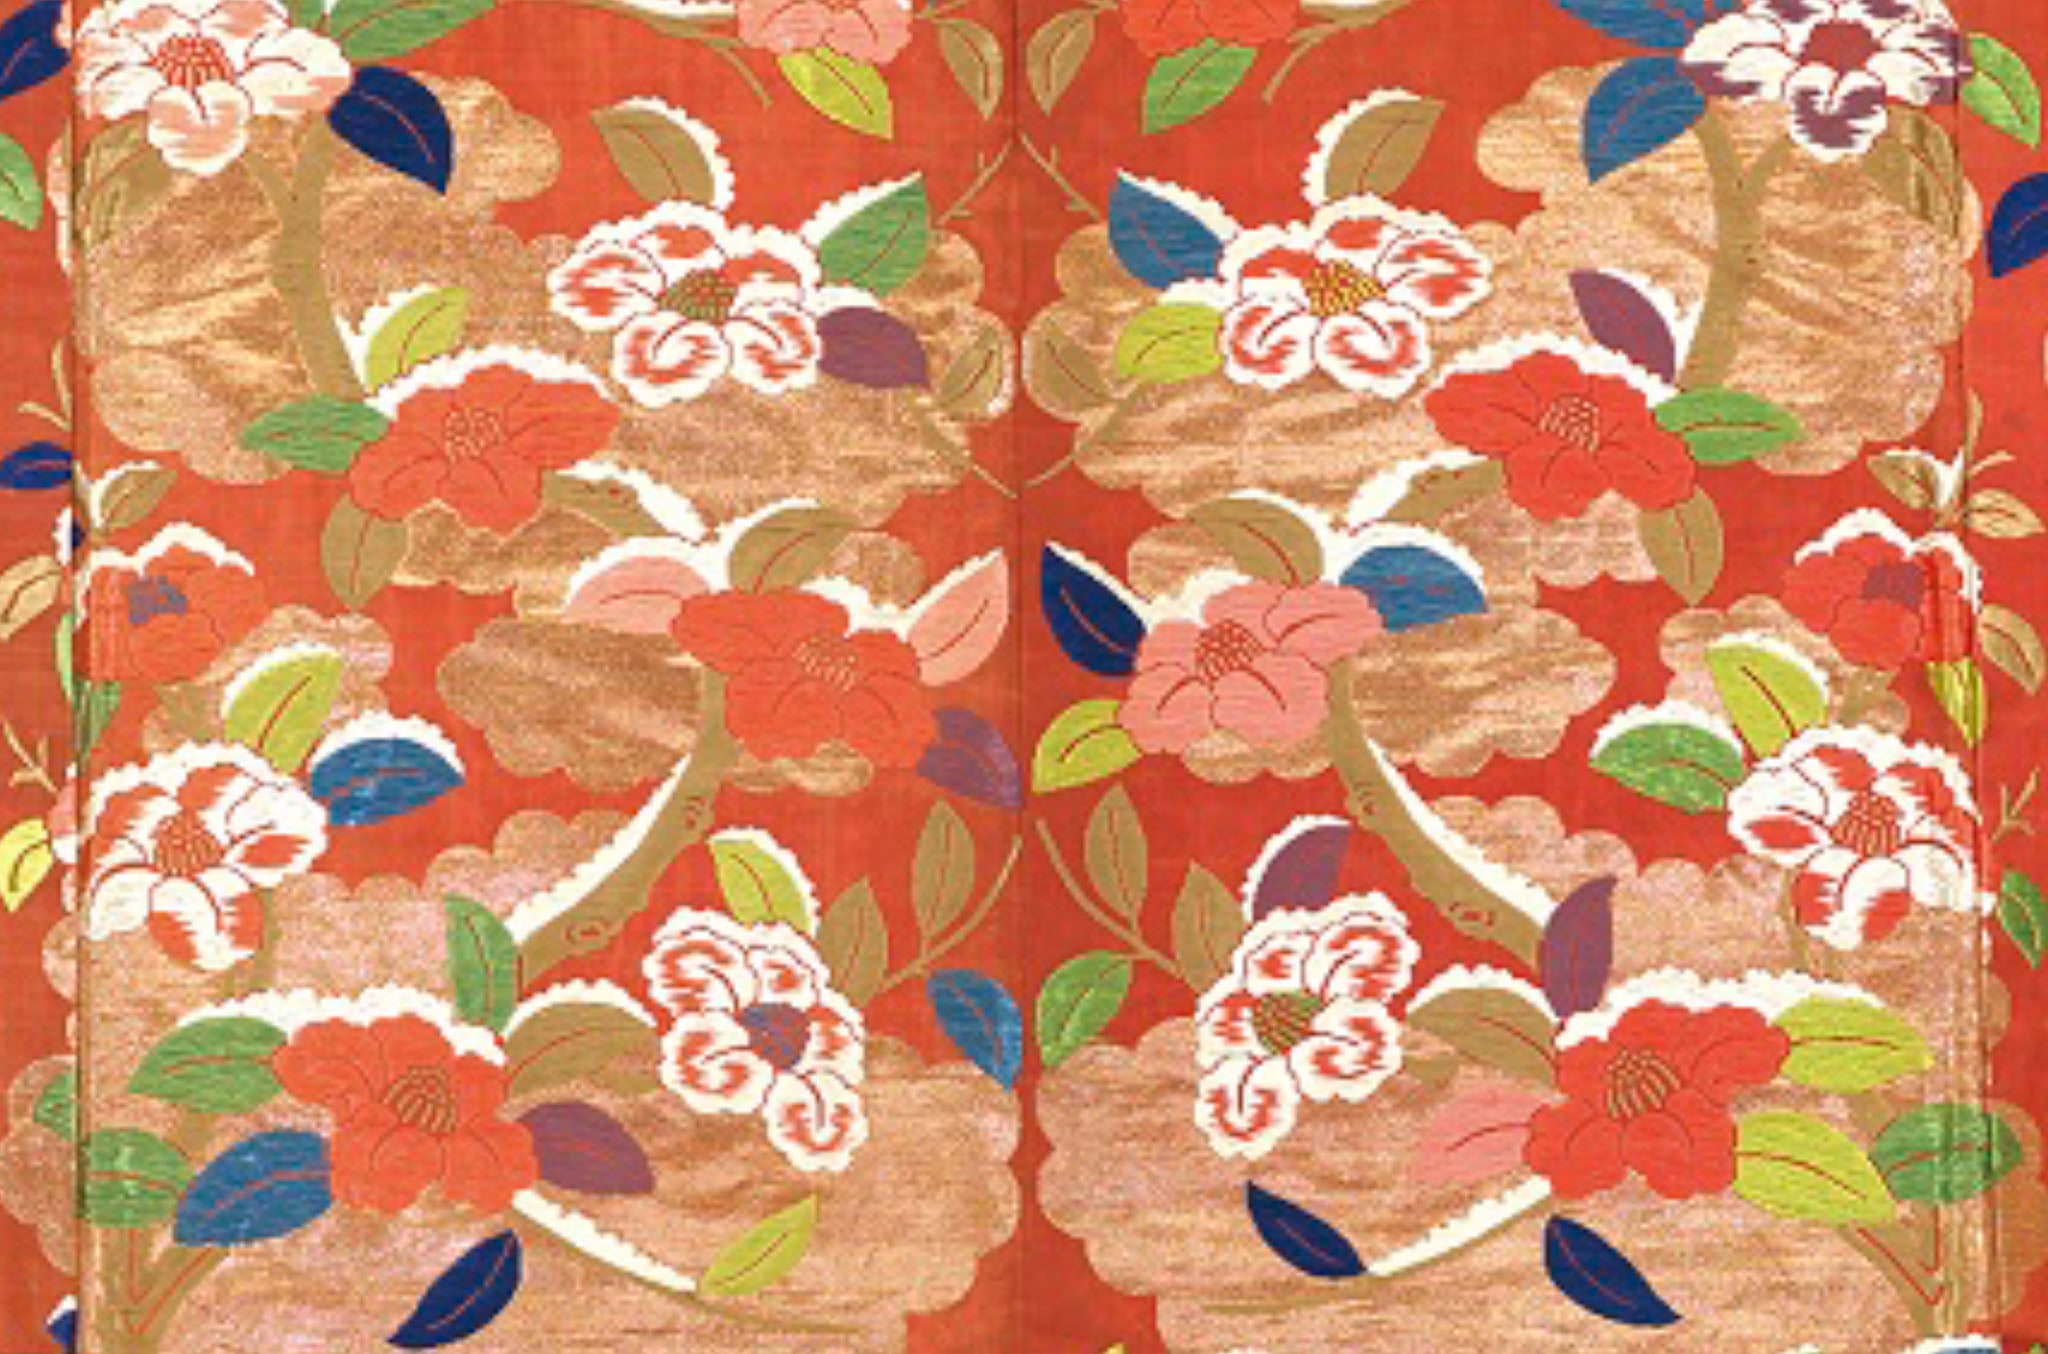 Detail of Noh Kimono from the Hatakeyama Collection at Kyoto National Museum